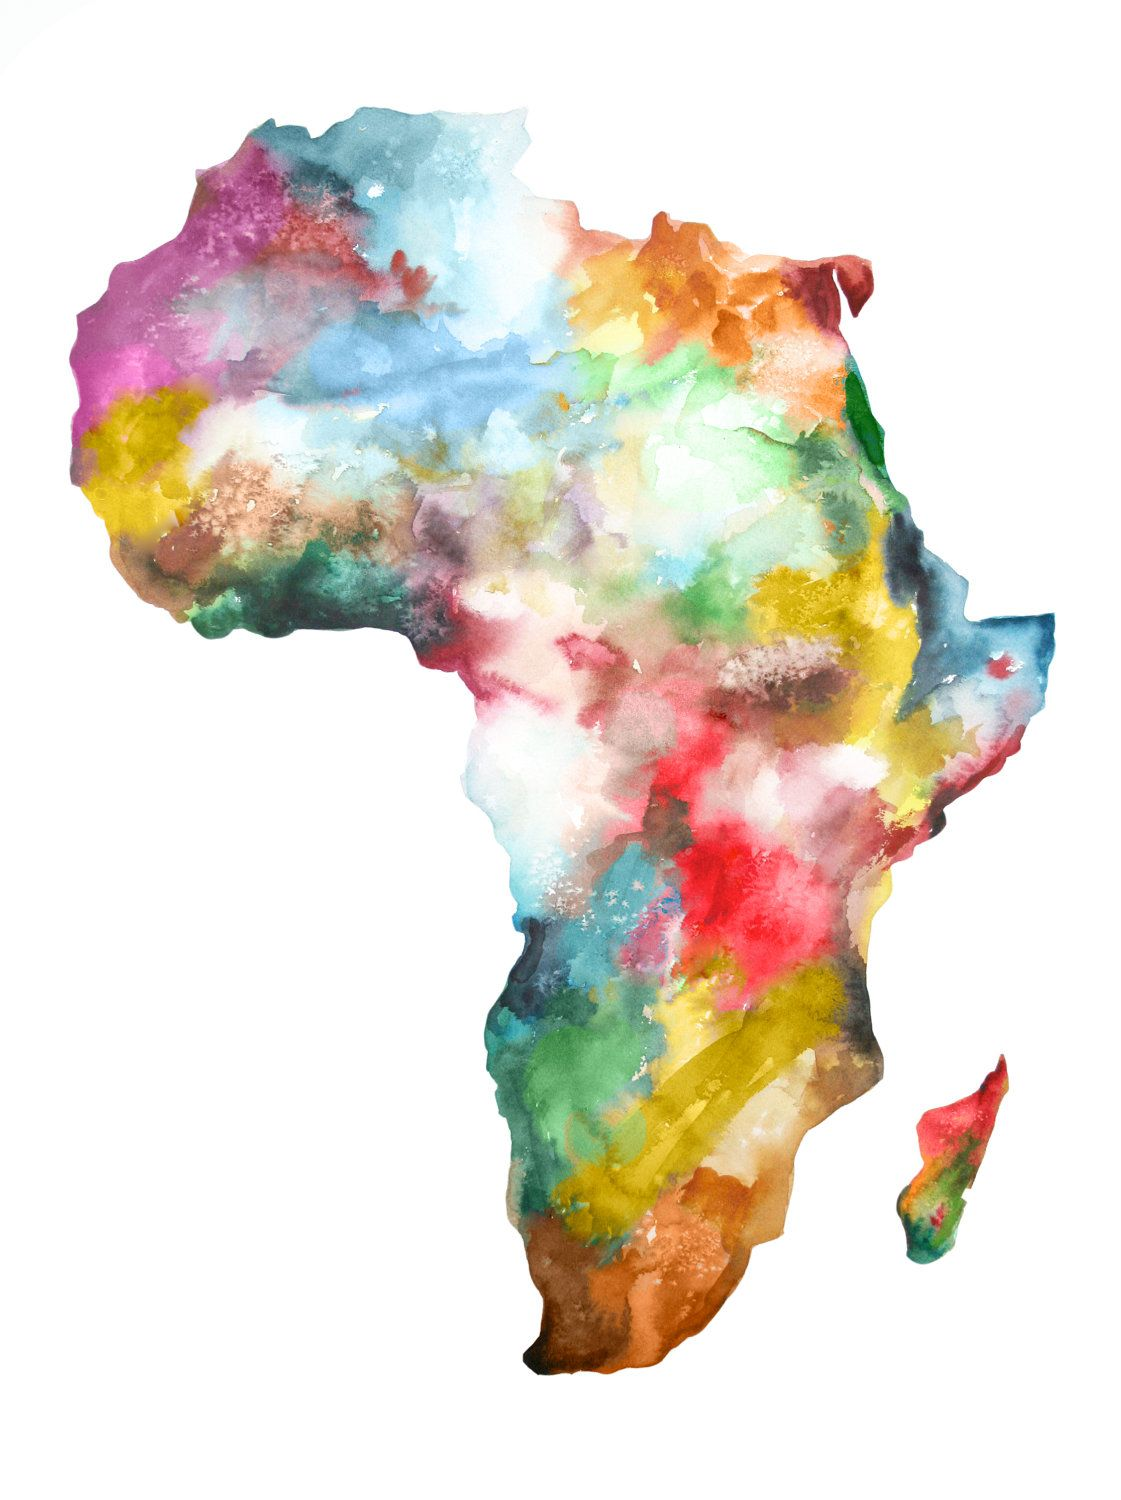 africa map art audreydeford on etsy illistrations and illistrated 10025